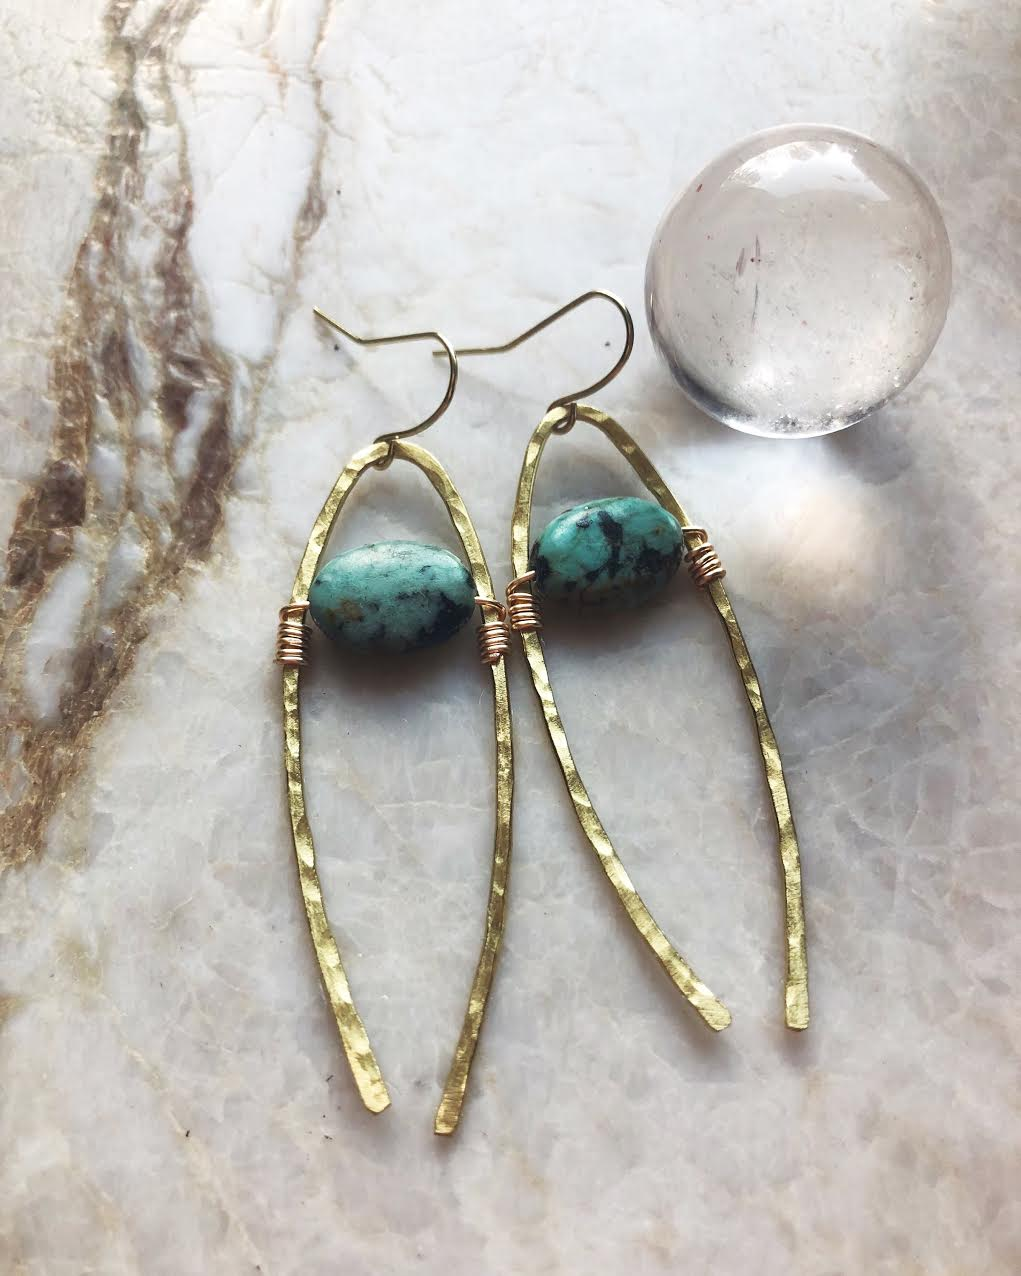 Hand Made Wild Sol Jewelry - Forged and hammered gold plated brass. These earrings are great for everyday wear, but also make a statement in of themselves.